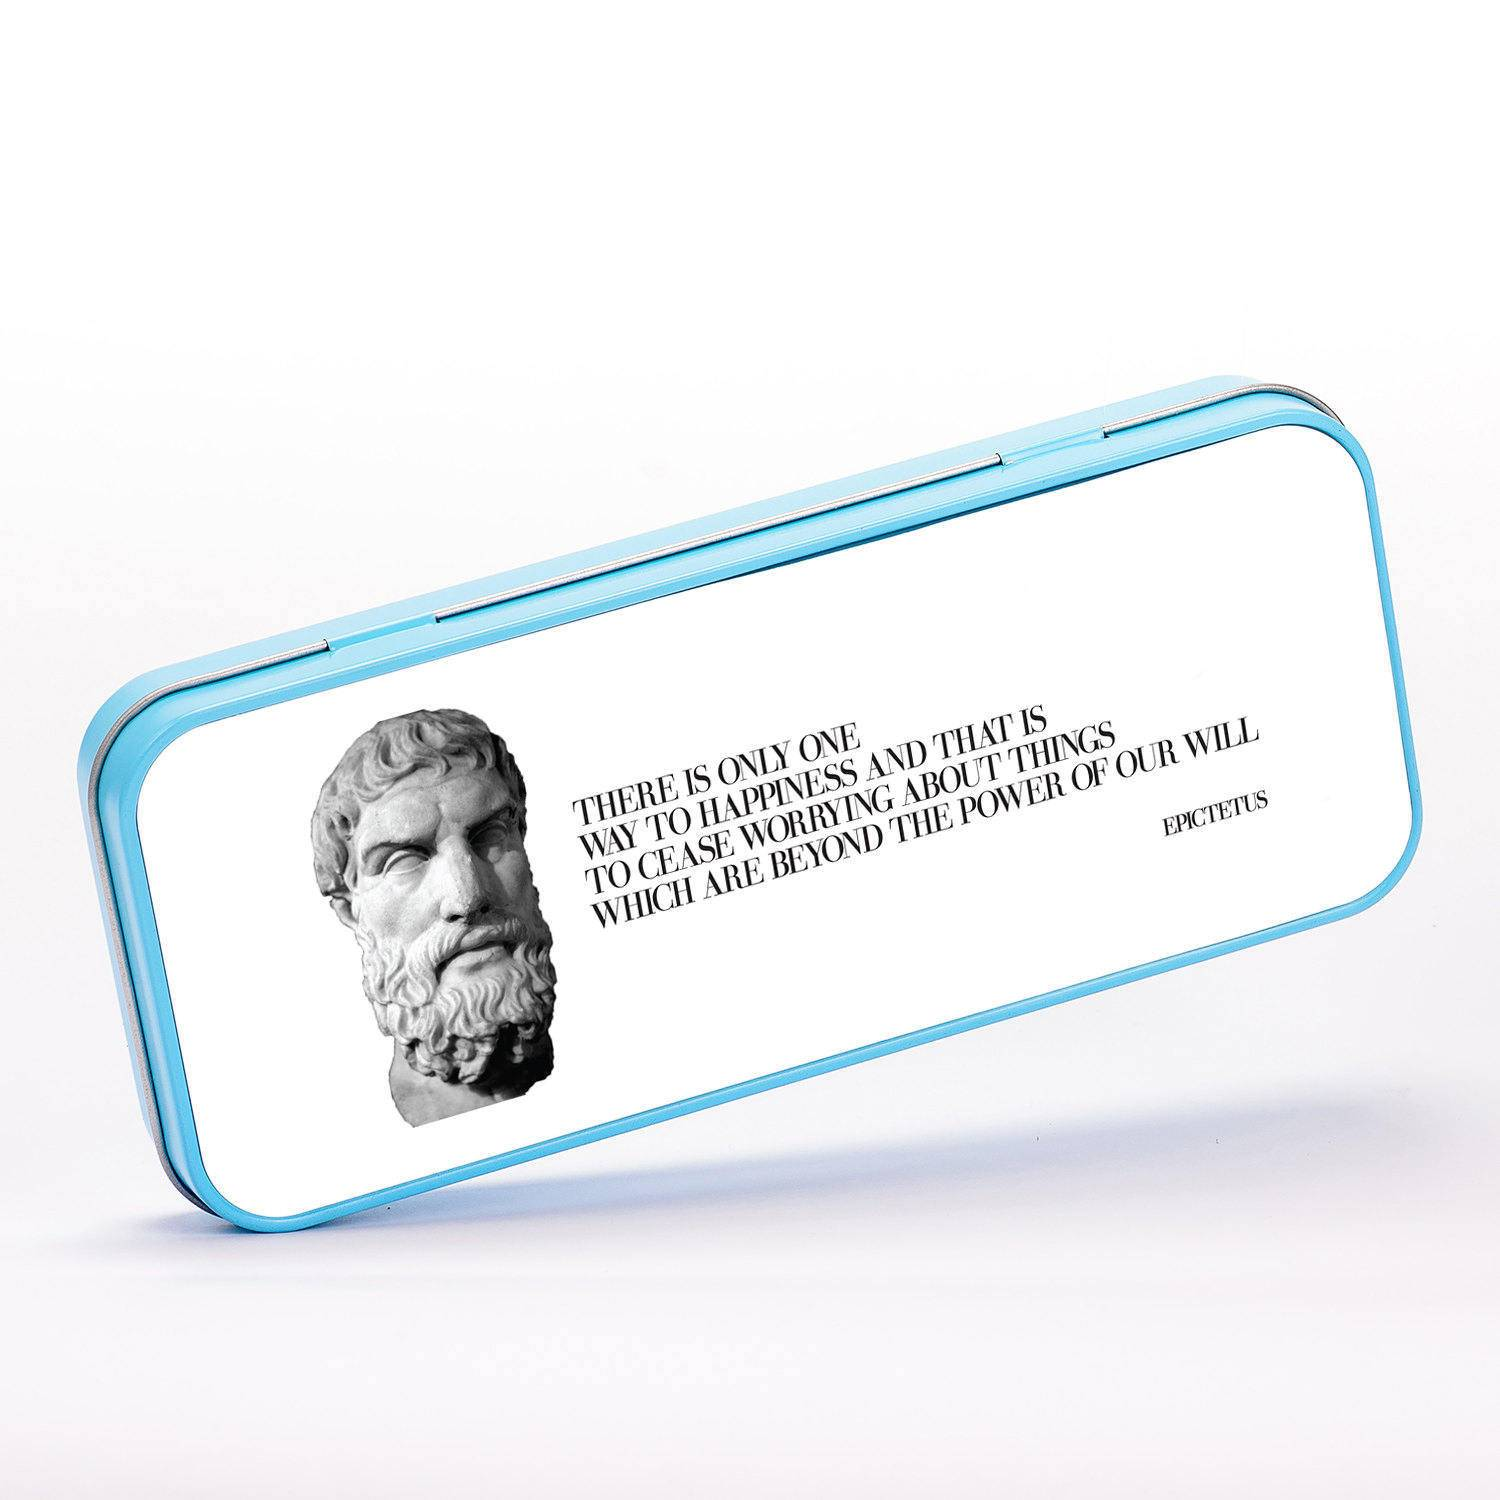 There is Only Way to Happiness Quote Epictetus Ancient Greek Philosopher, Stationery Metal Tin, Personalised Stationery, ST106